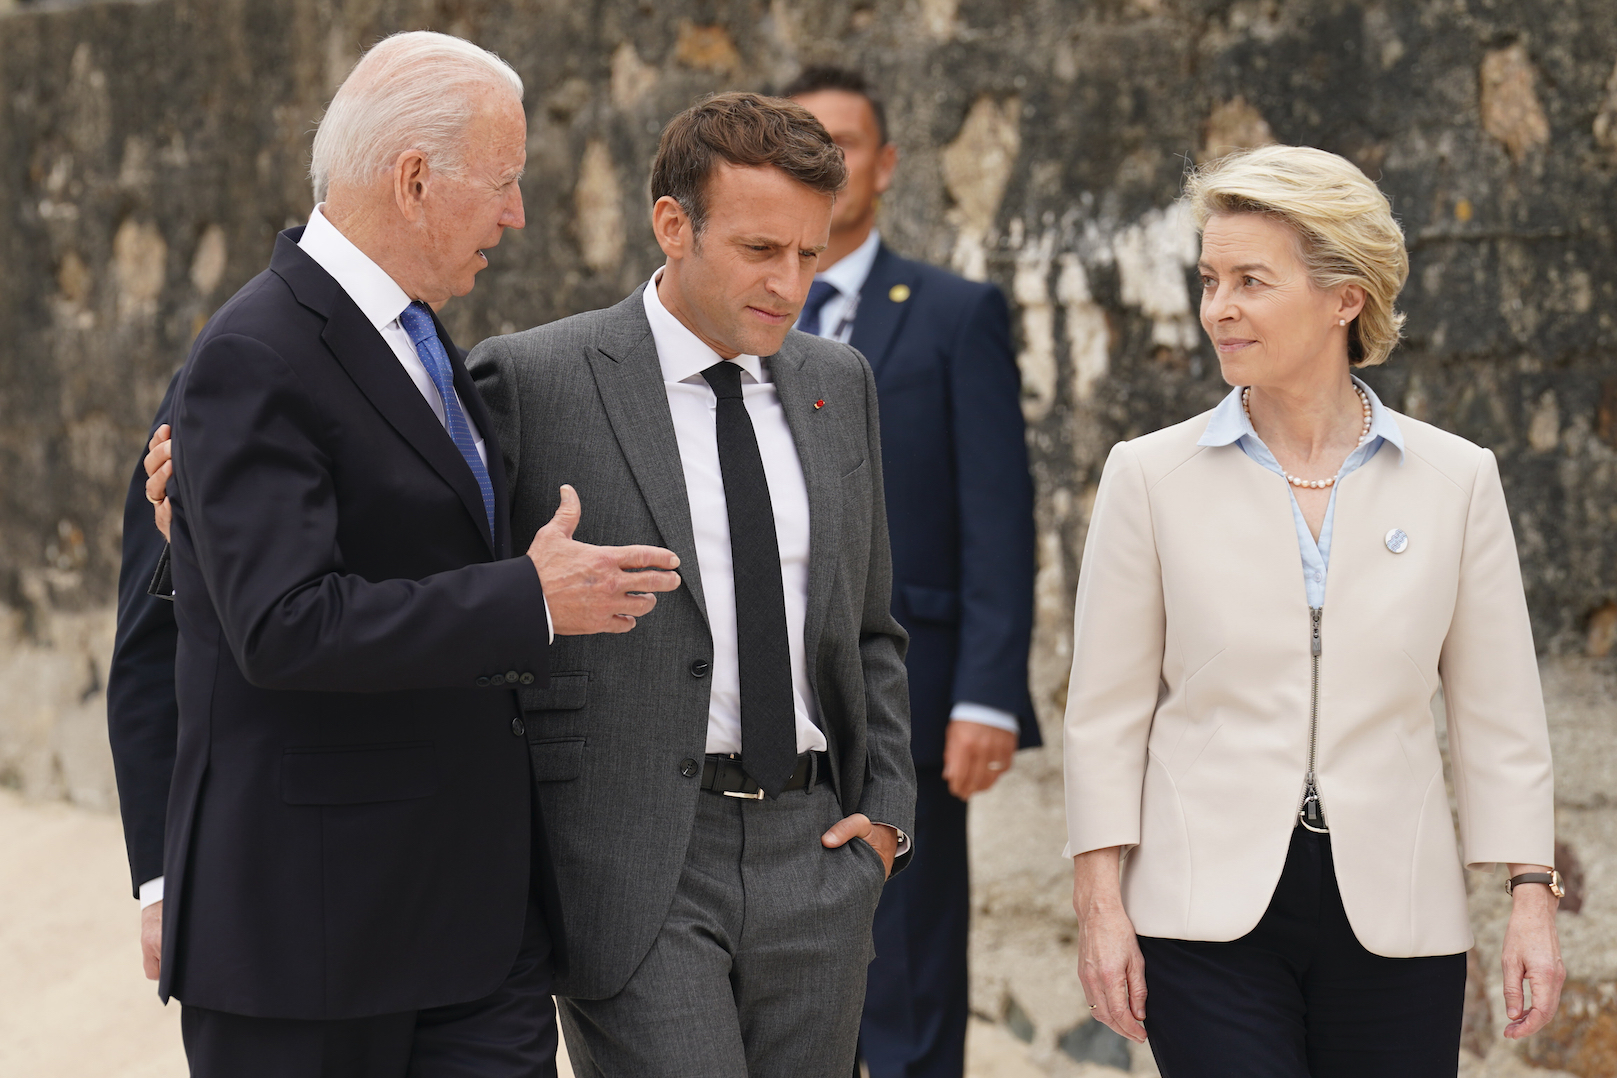 As President Biden visits E.U. leaders on June 15, both sides expect to agree to end their tariff dispute by Dec. 1, according to reports.